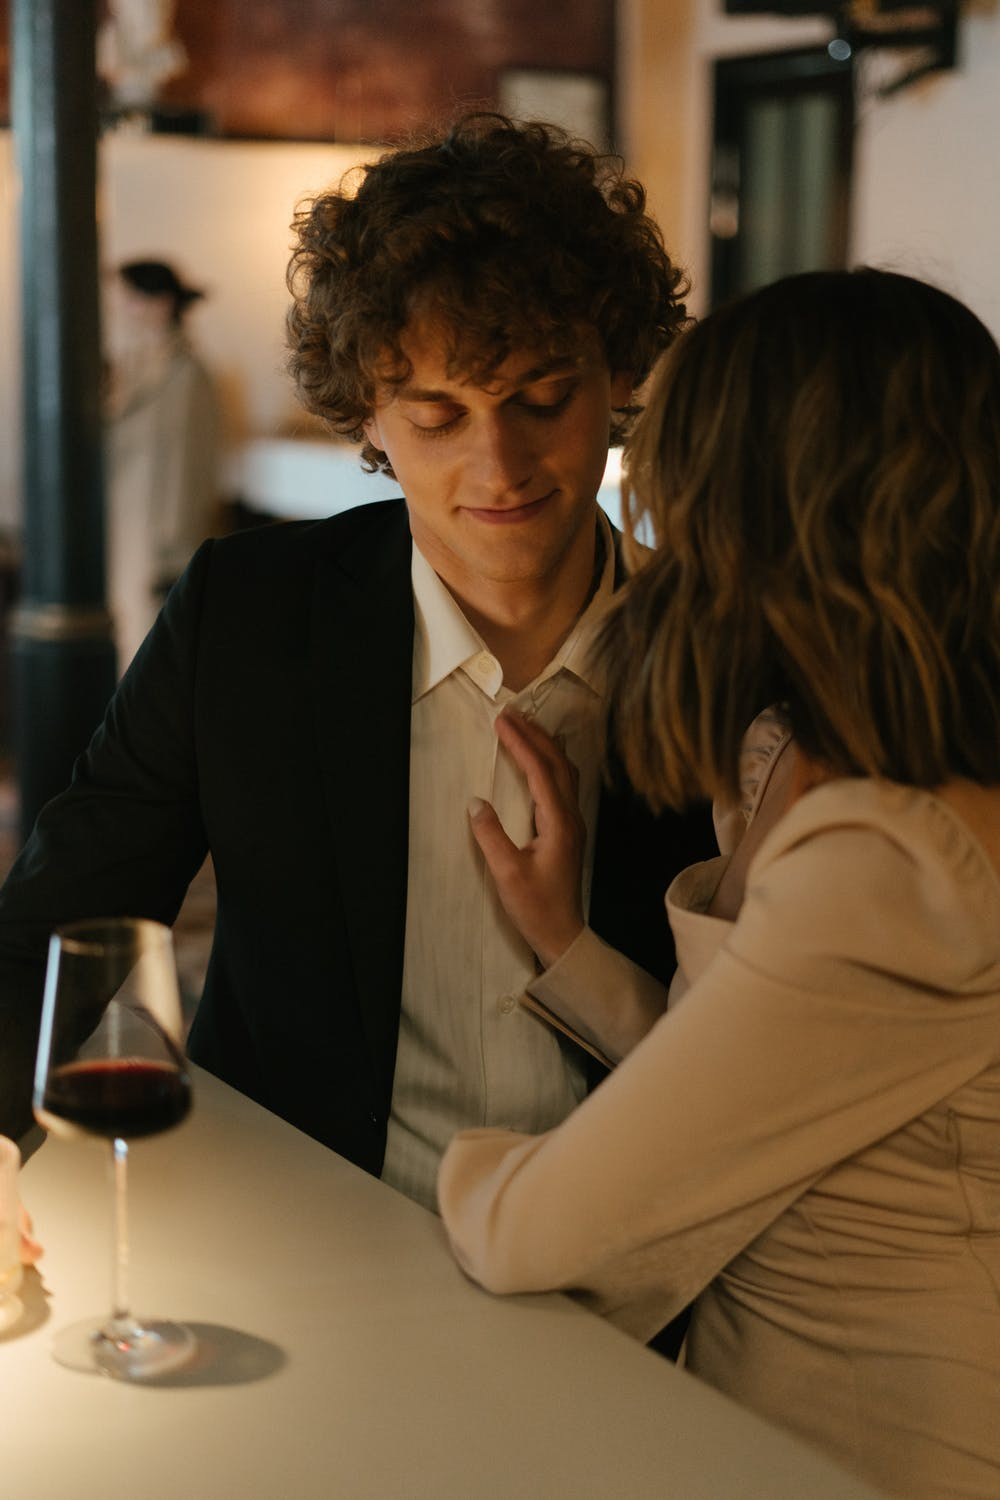 Woman gently touches the chest of her date as they sit at a bar in a restaurant.